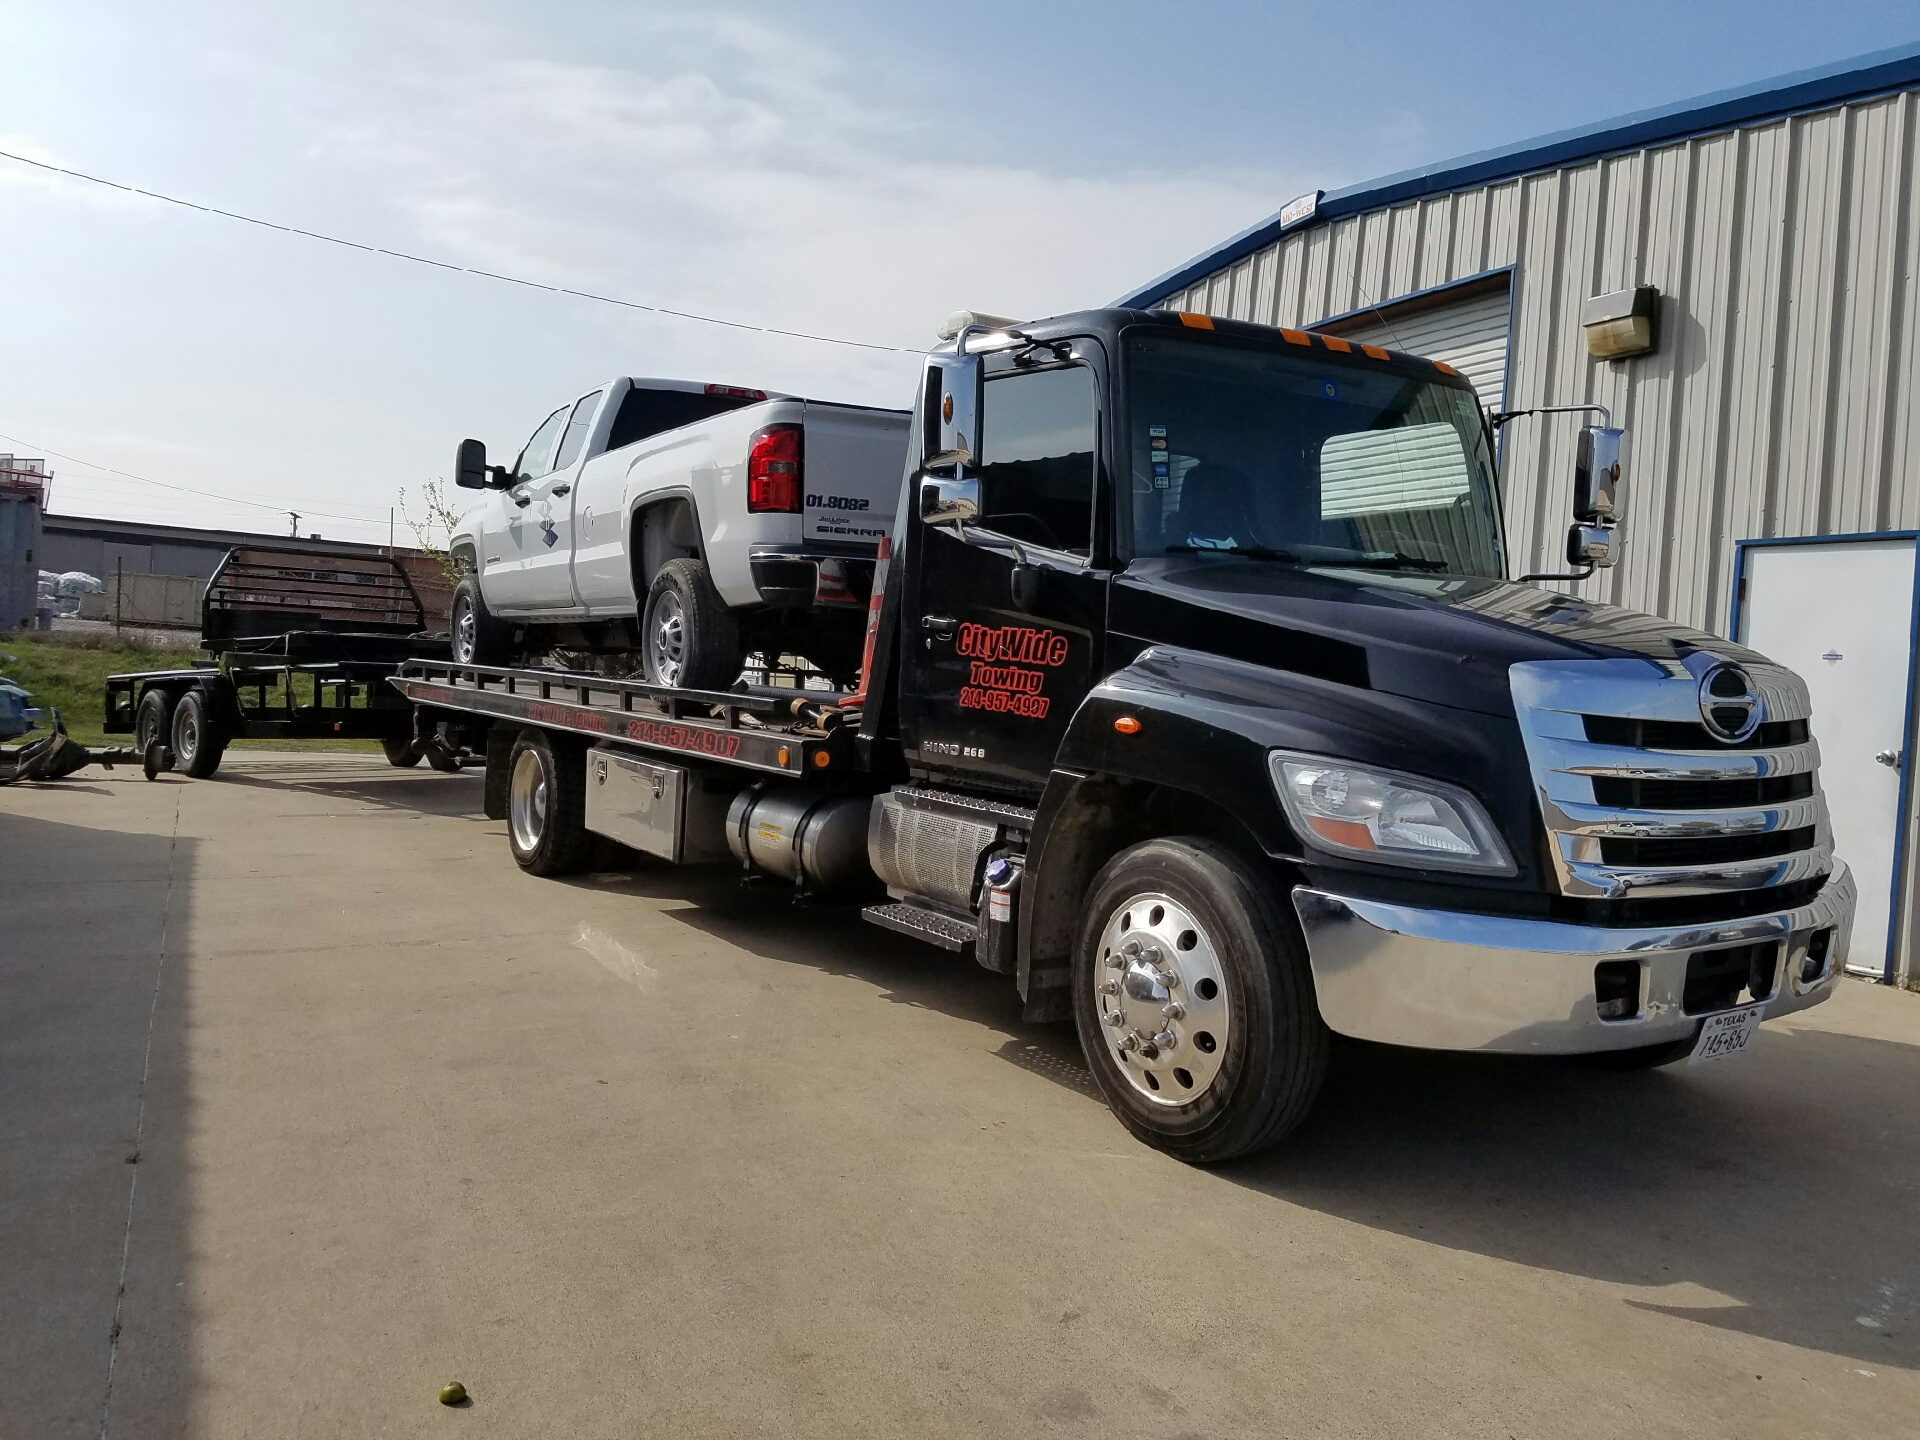 City Wide Towing >> Gallery - Citywide Towing Services | Dallas County, TX Emergency Flatbed Dolly Wheel Lift Tow ...